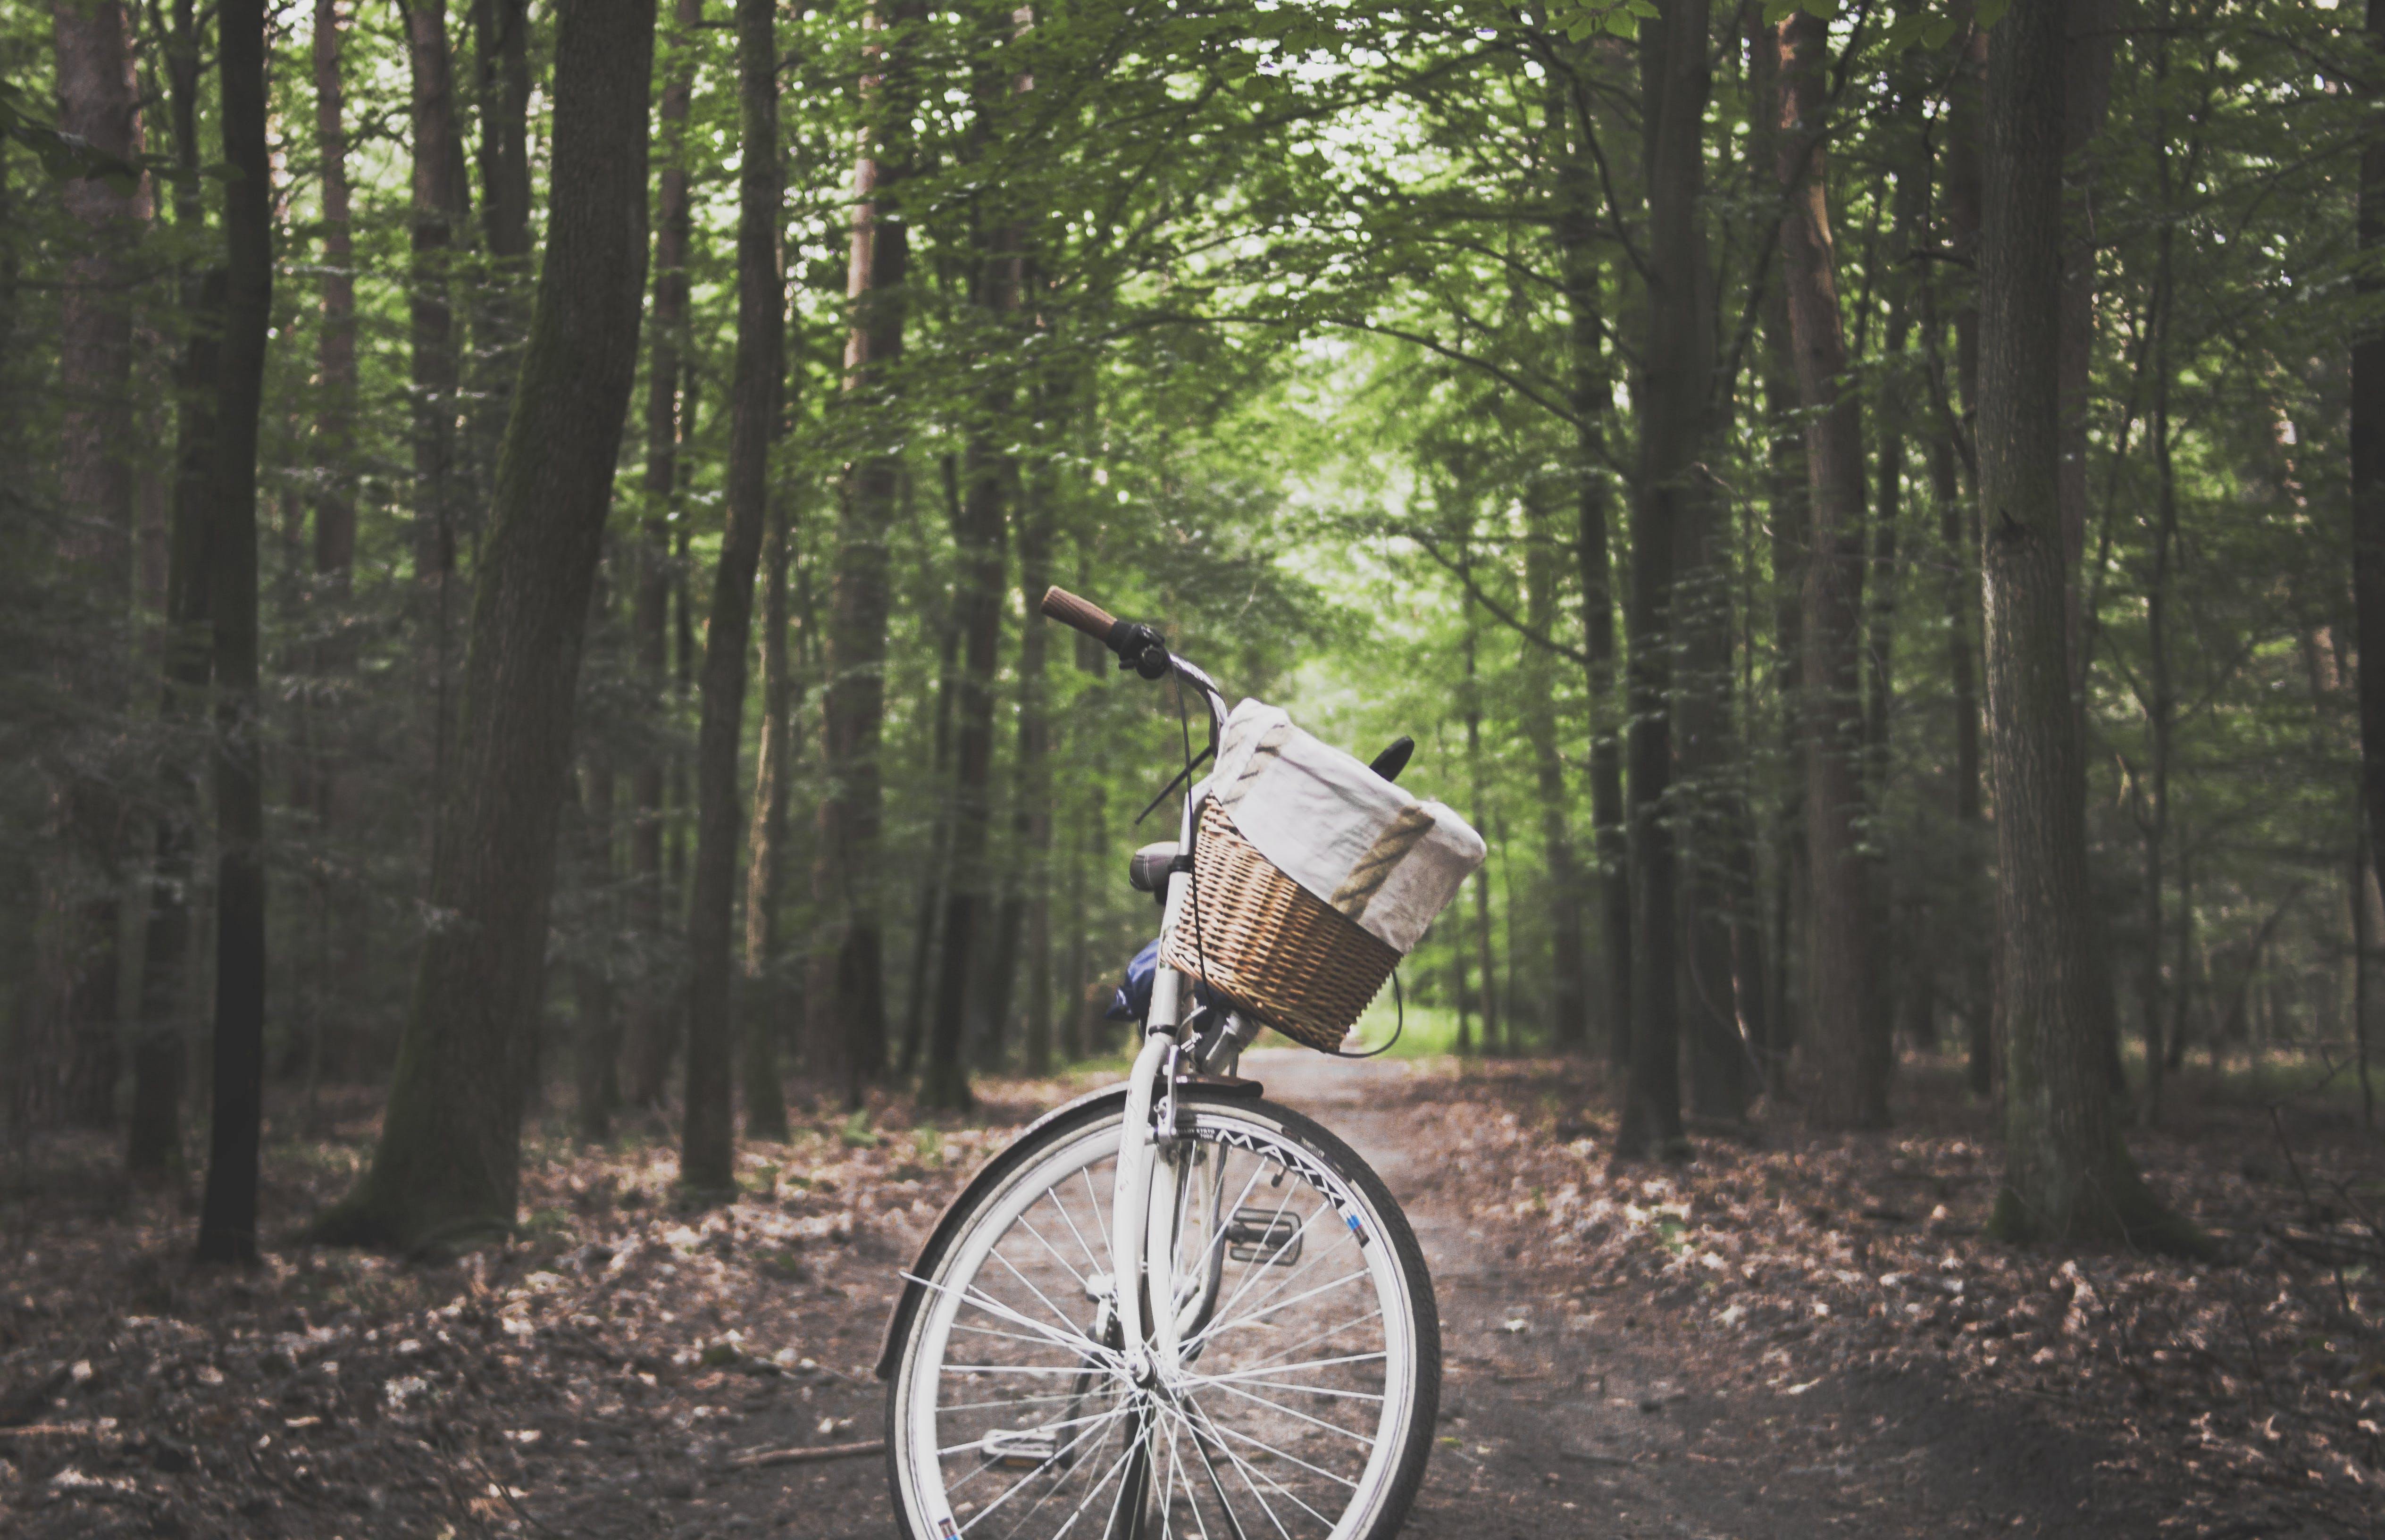 City Bicycle in the Middle of Forest Trail